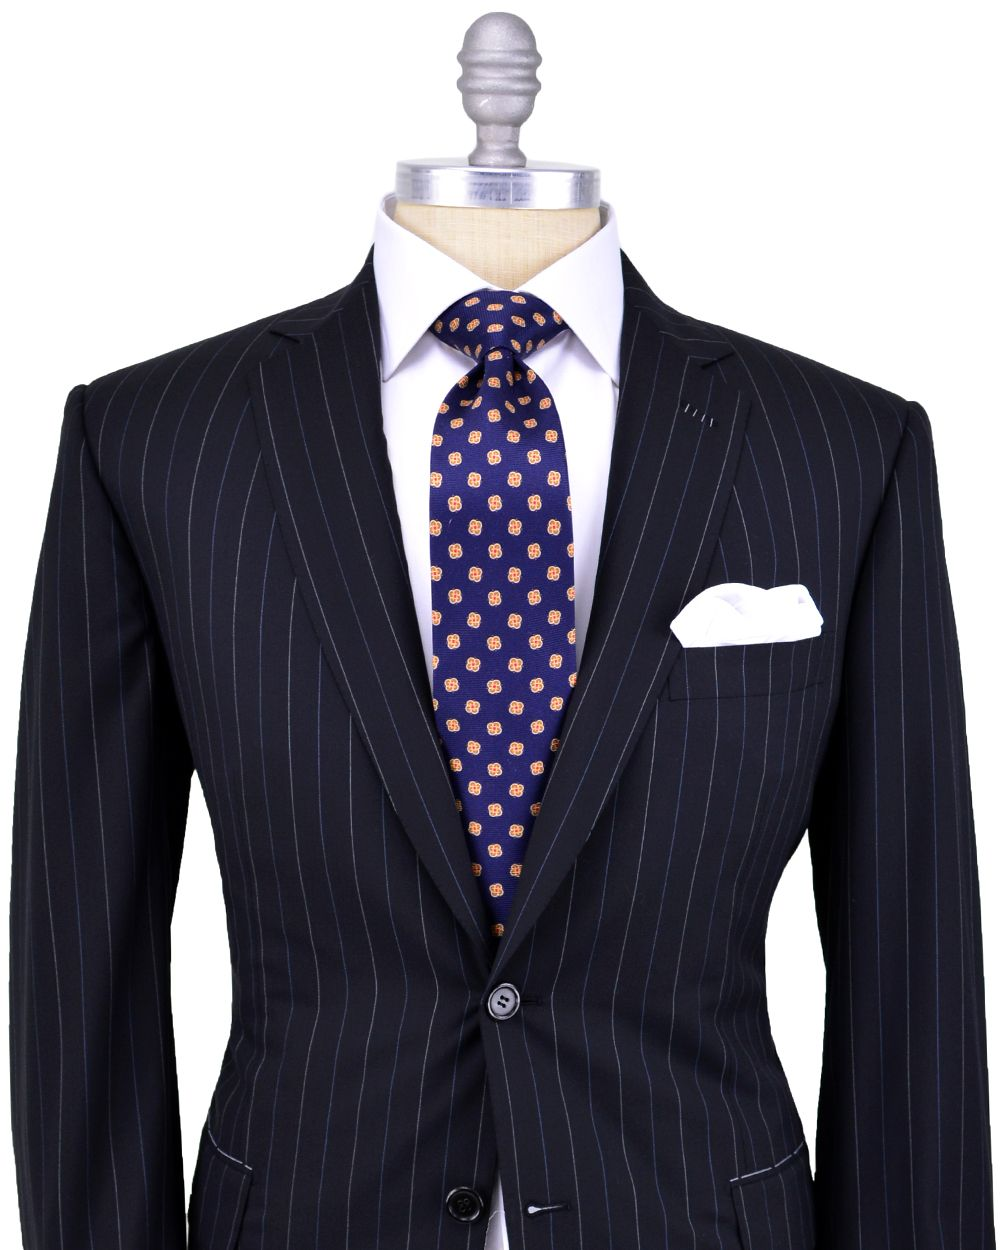 Brioni Black with Blue and White Pinstripe Suit | Fancy clothes ...